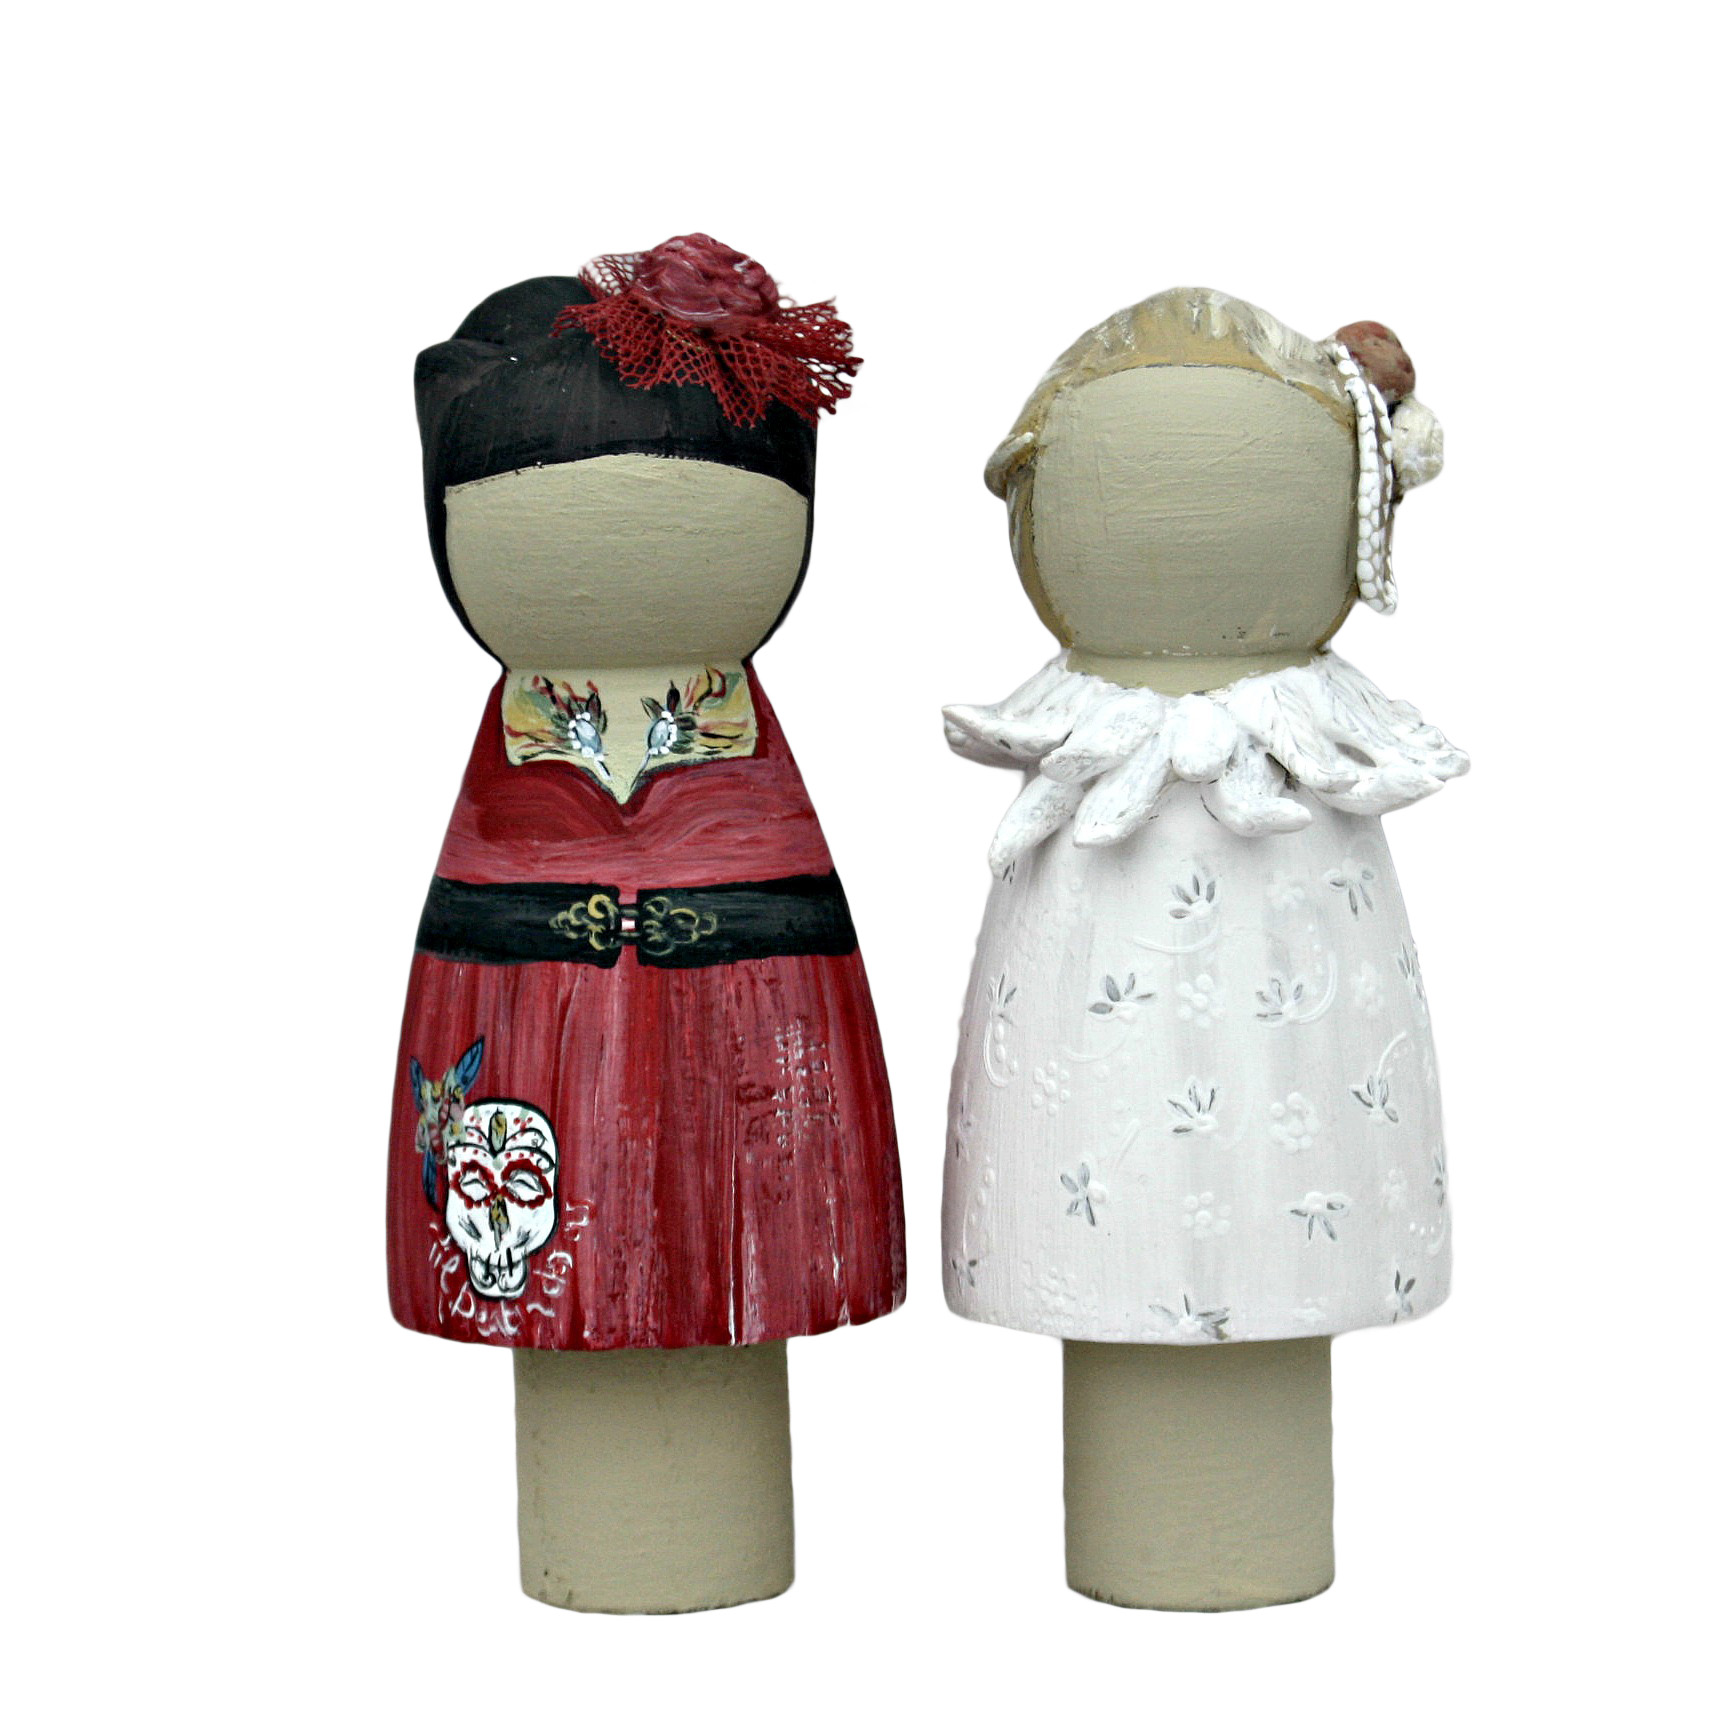 Bride and Bride Wedding Cake Topper - Peg Doll - Lotty Lollipop